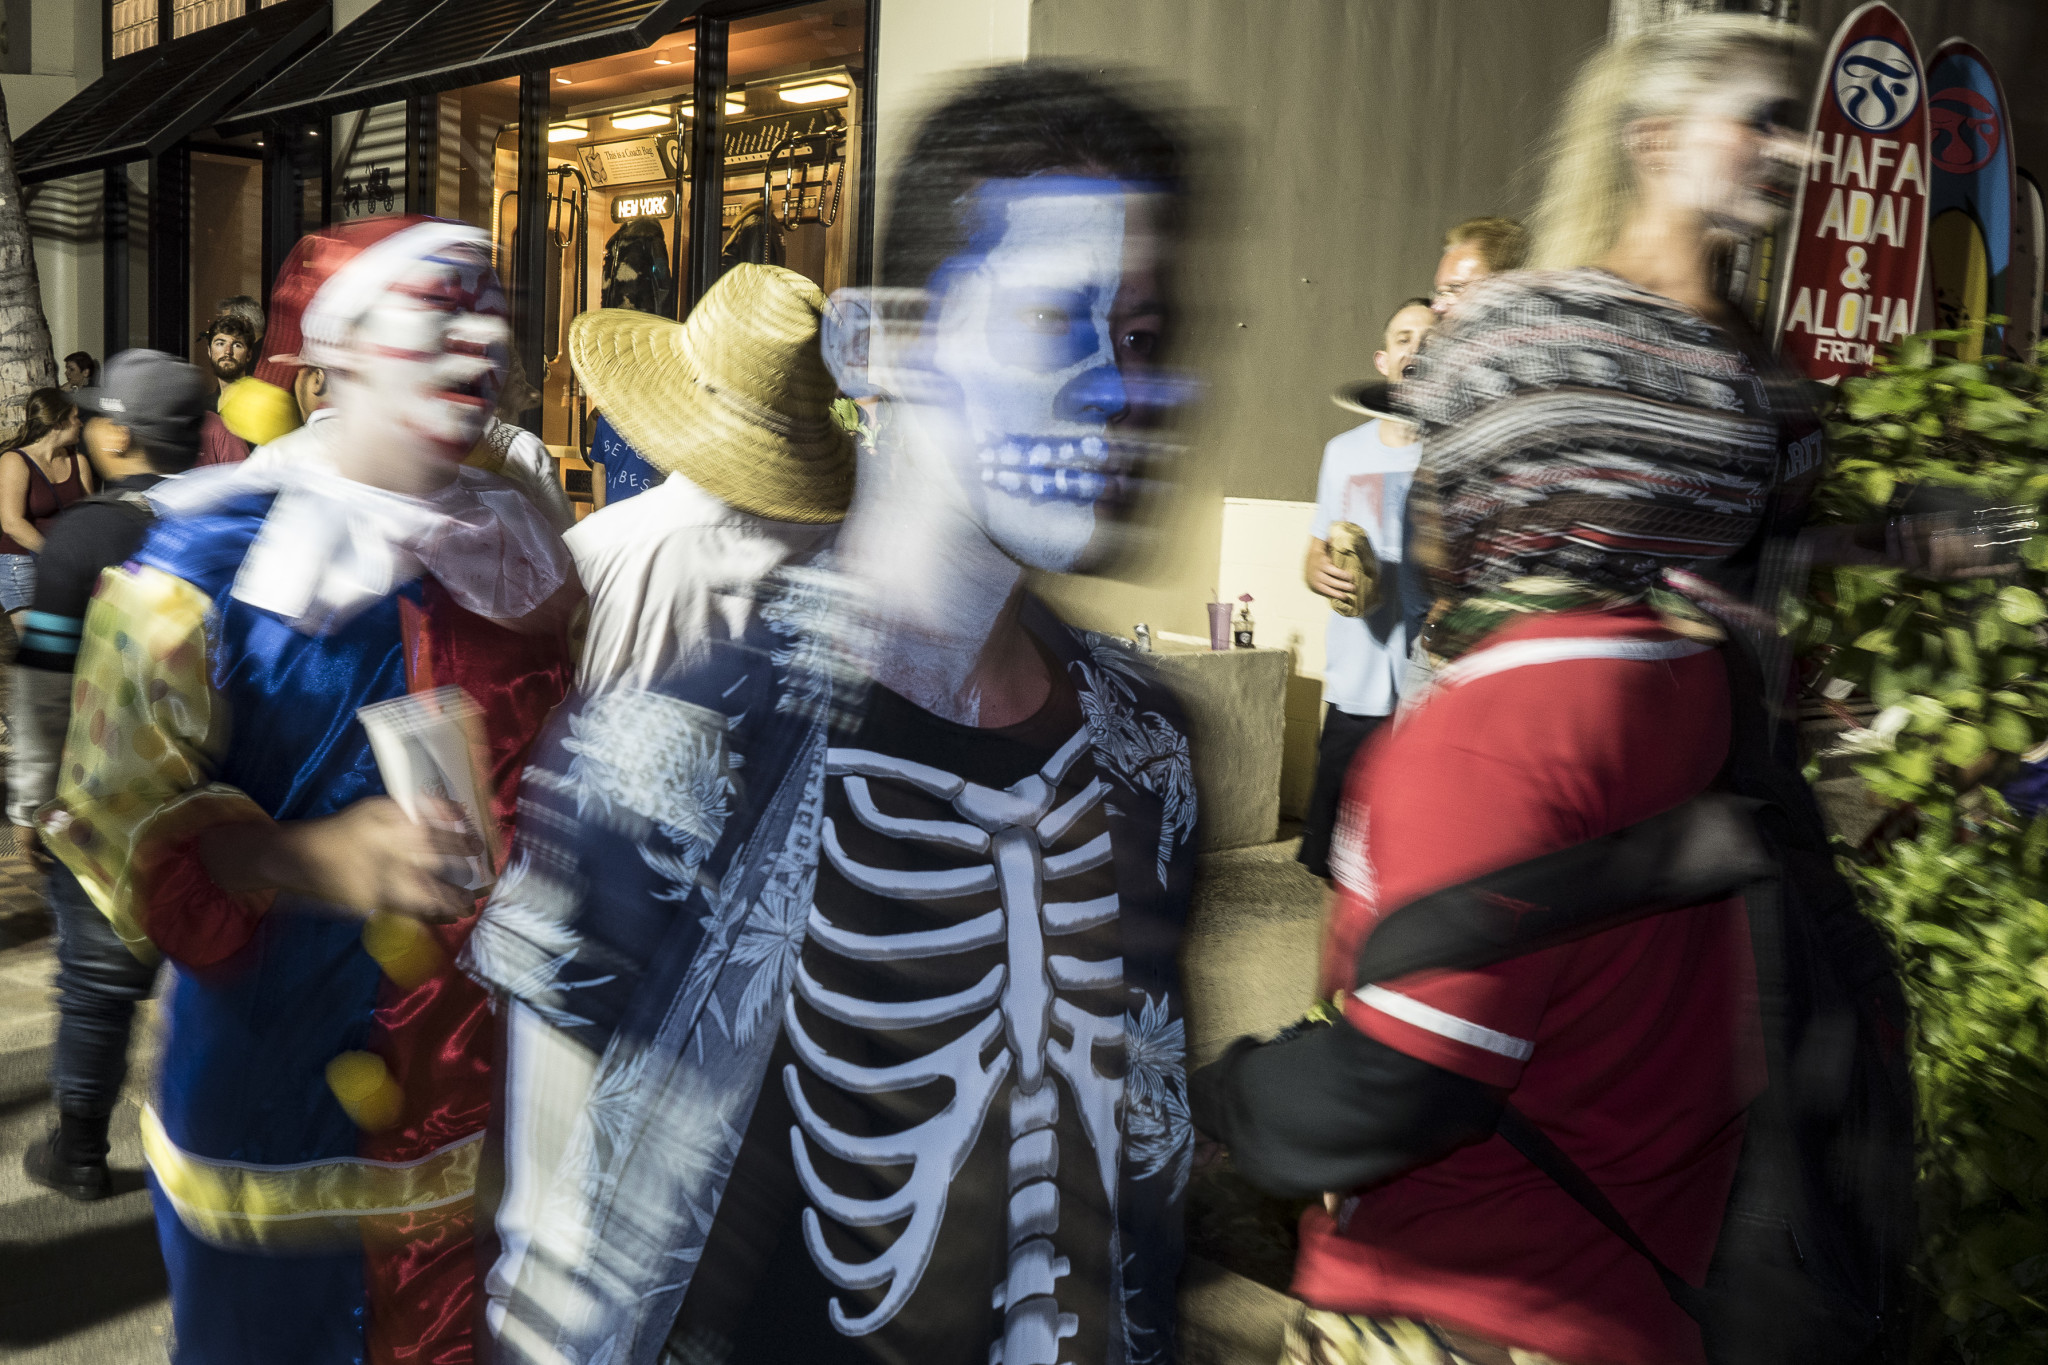 <p>Some folks were moving faster than others along the boulevard during the annual celebration Monday.</p>